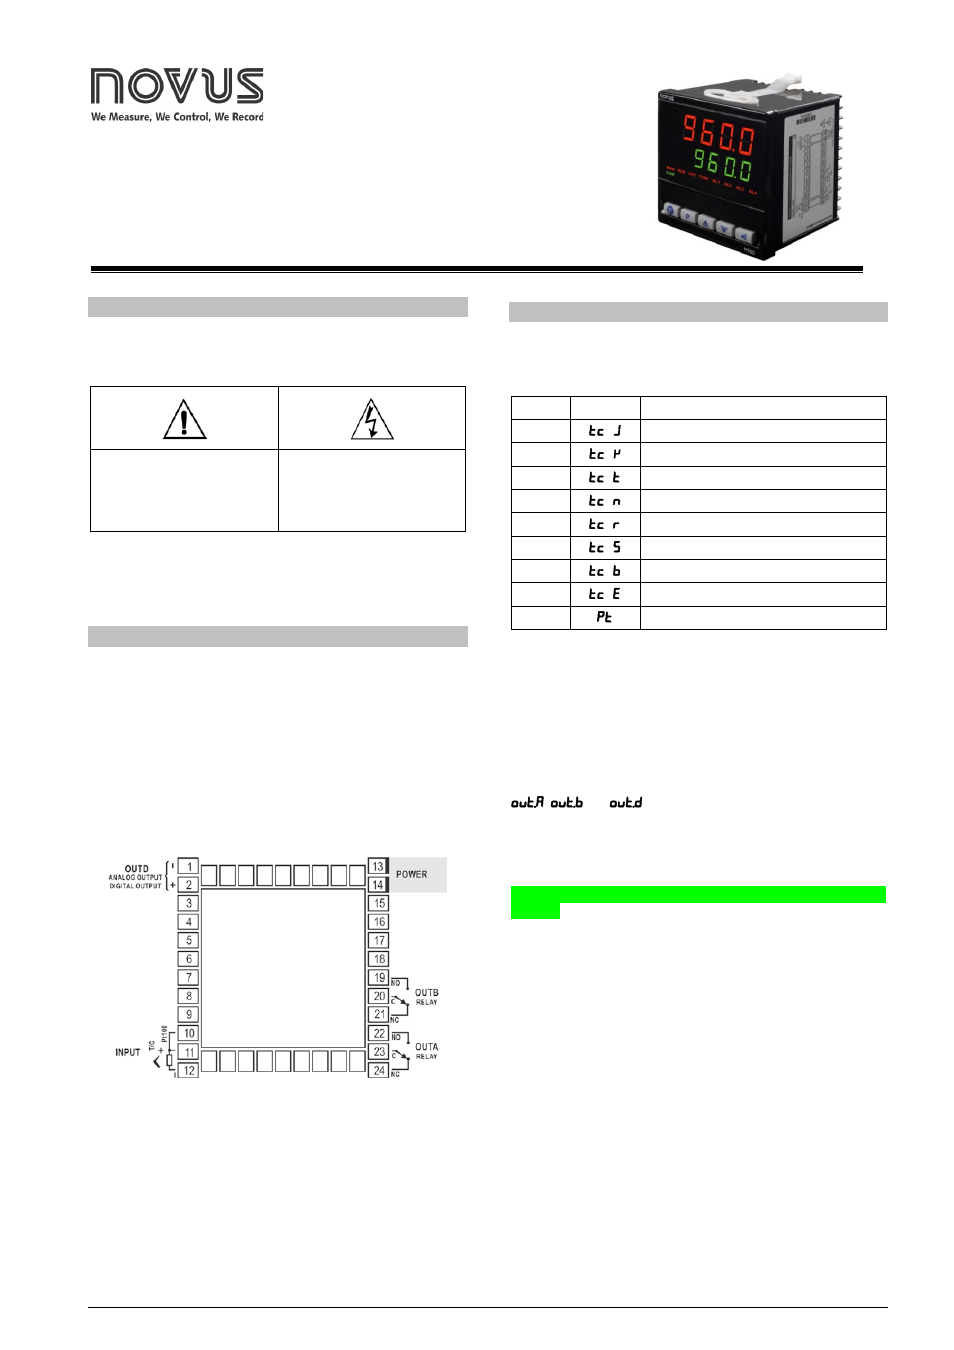 NOVUS Controller N960 User Manual | 6 pages